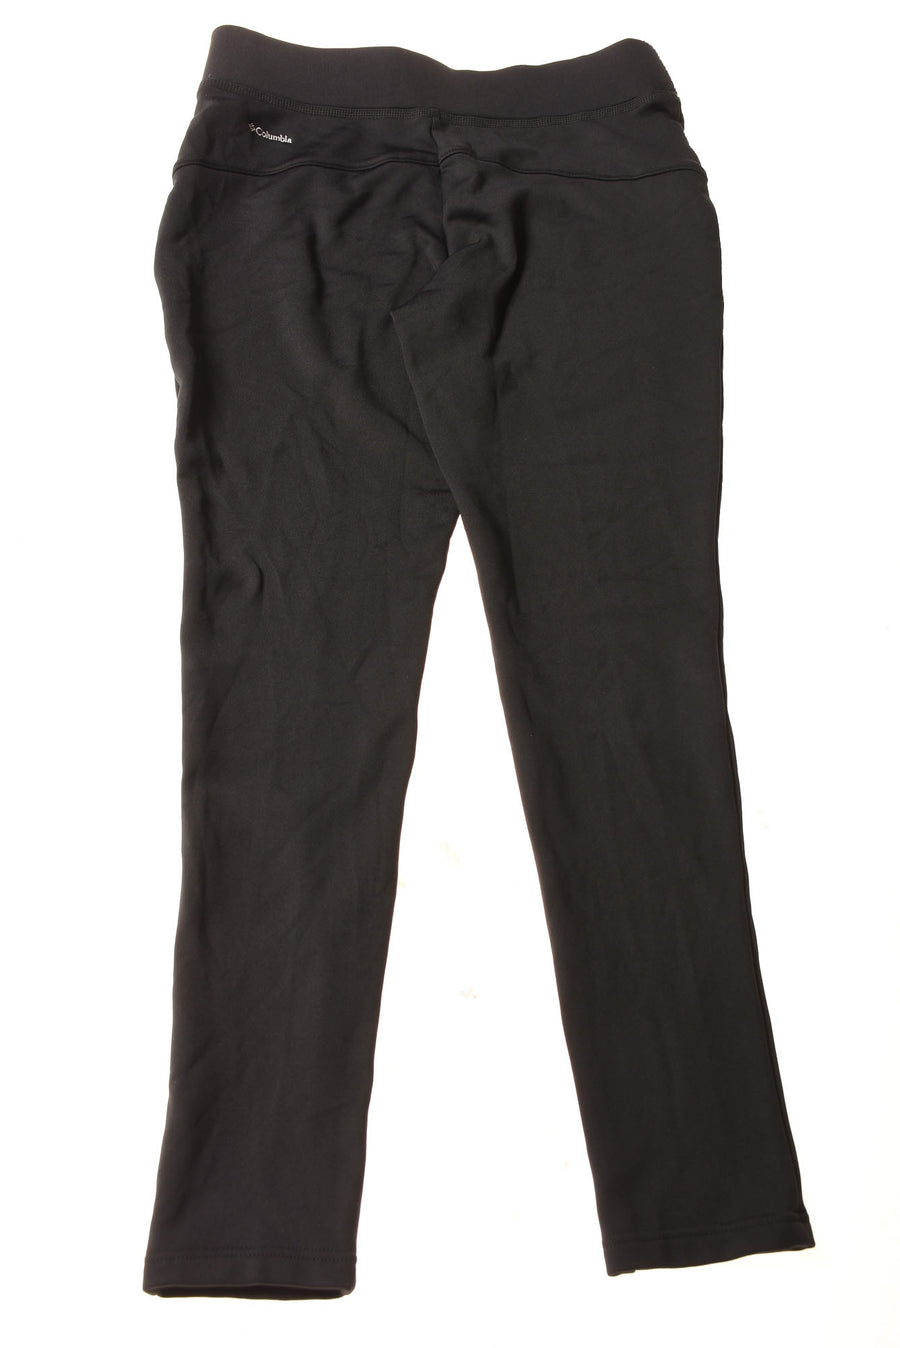 USED Touch Women's Yoga Pants Medium Black